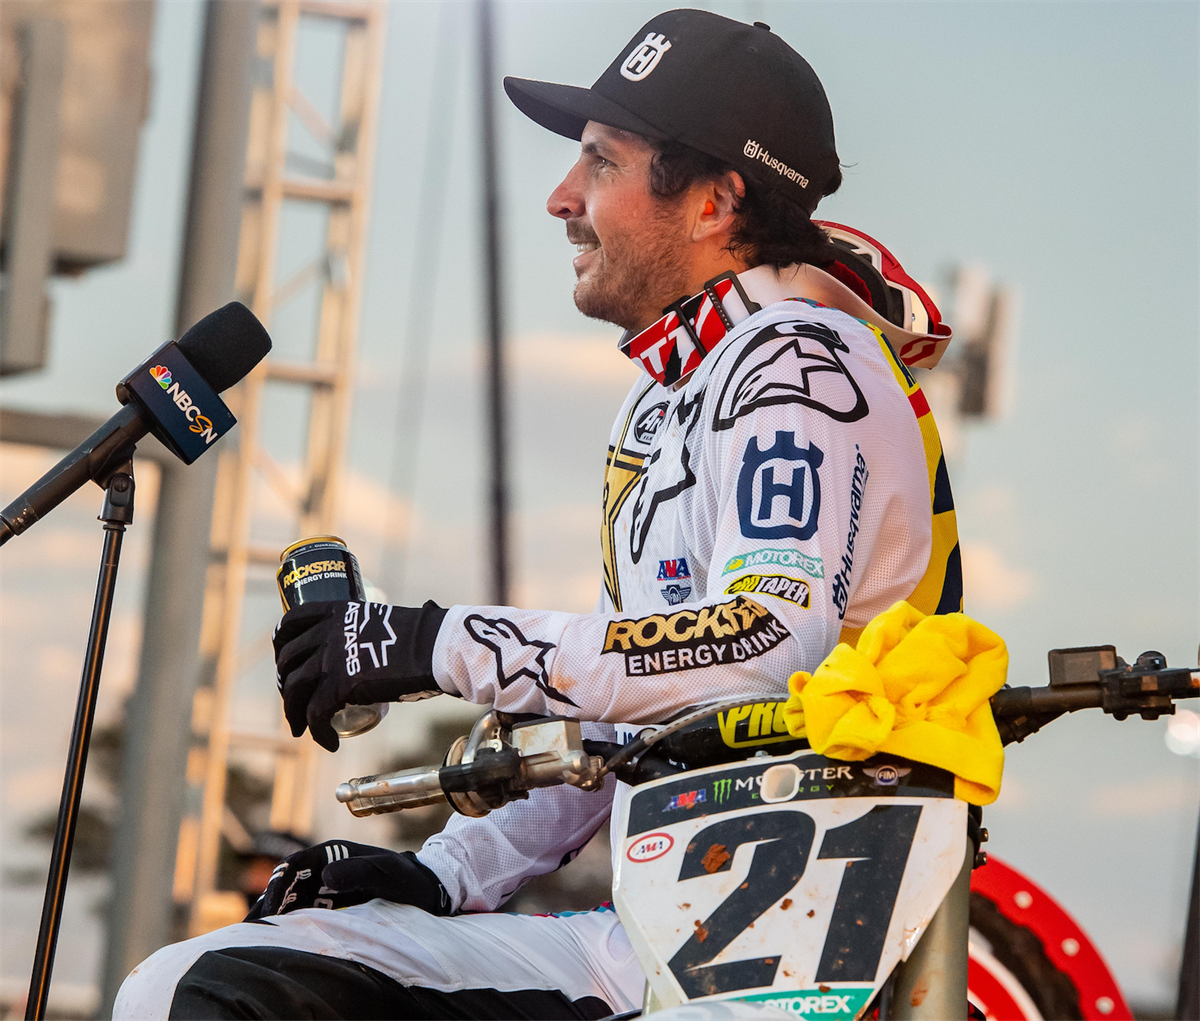 JASON ANDERSON HEAT WIN RD15